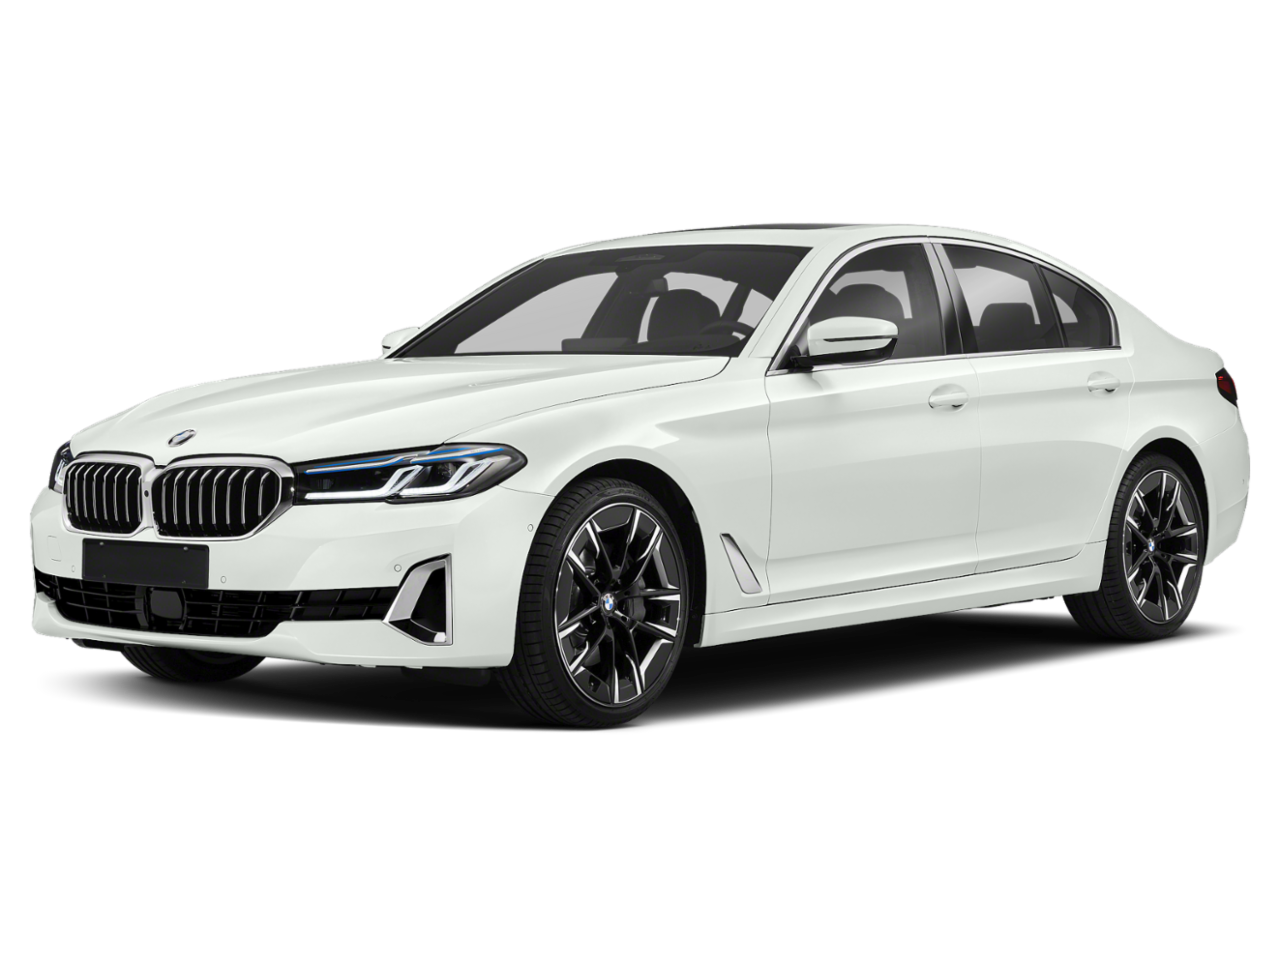 Buyer's Guide: 2021 BMW 5 Series